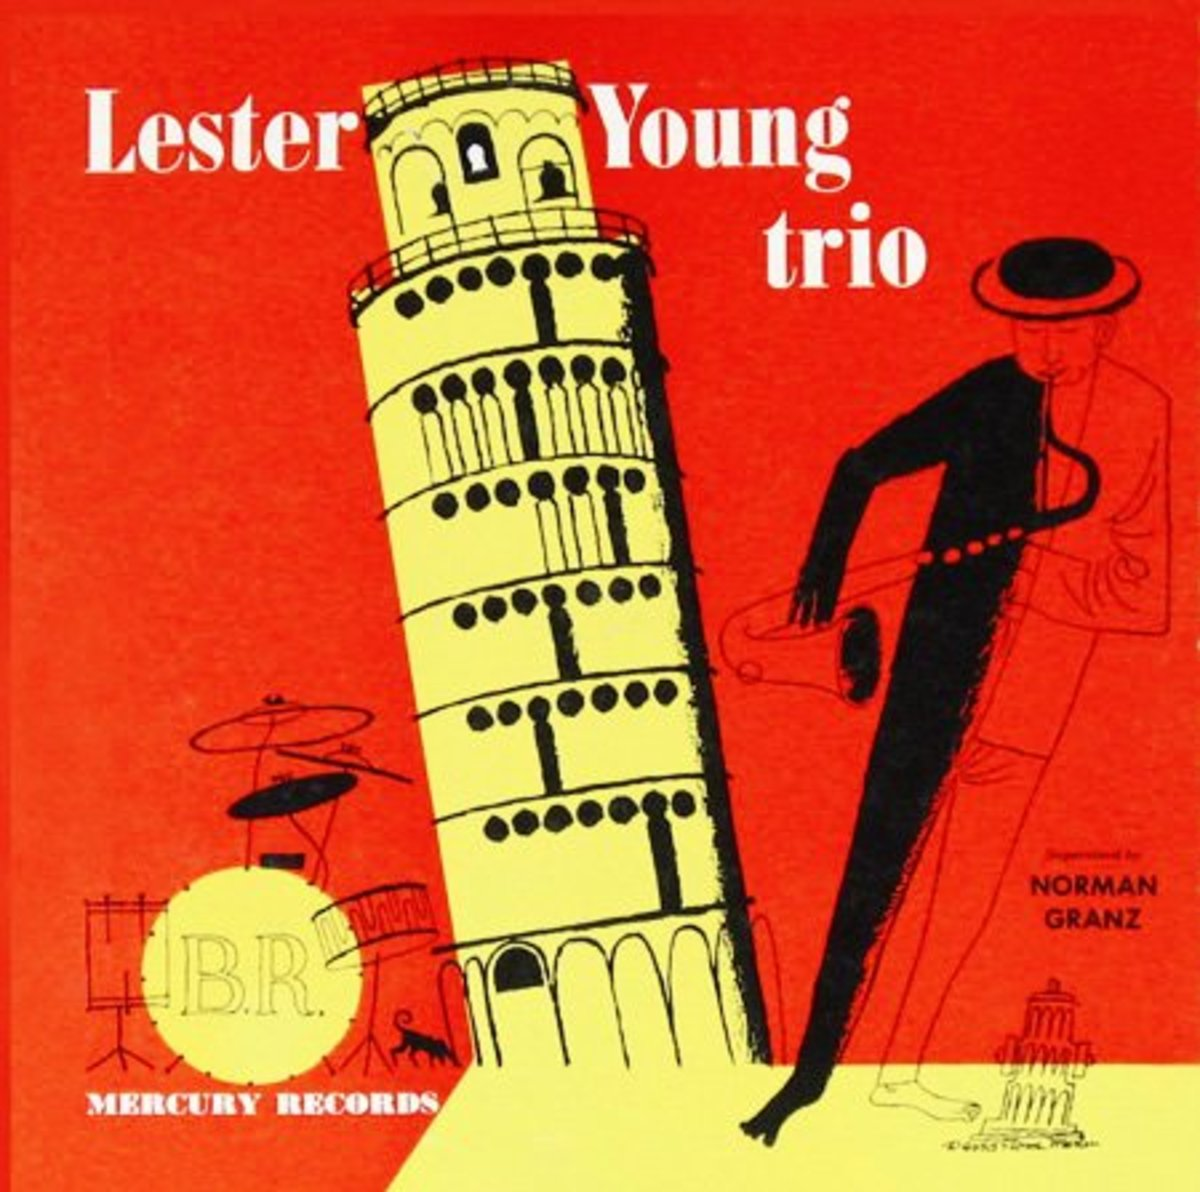 "Lester Young ""Lester Young Trio"" Mercury 104 10"" LP Vinyl Record (1952) Album Cover Art by David Stone Martin"